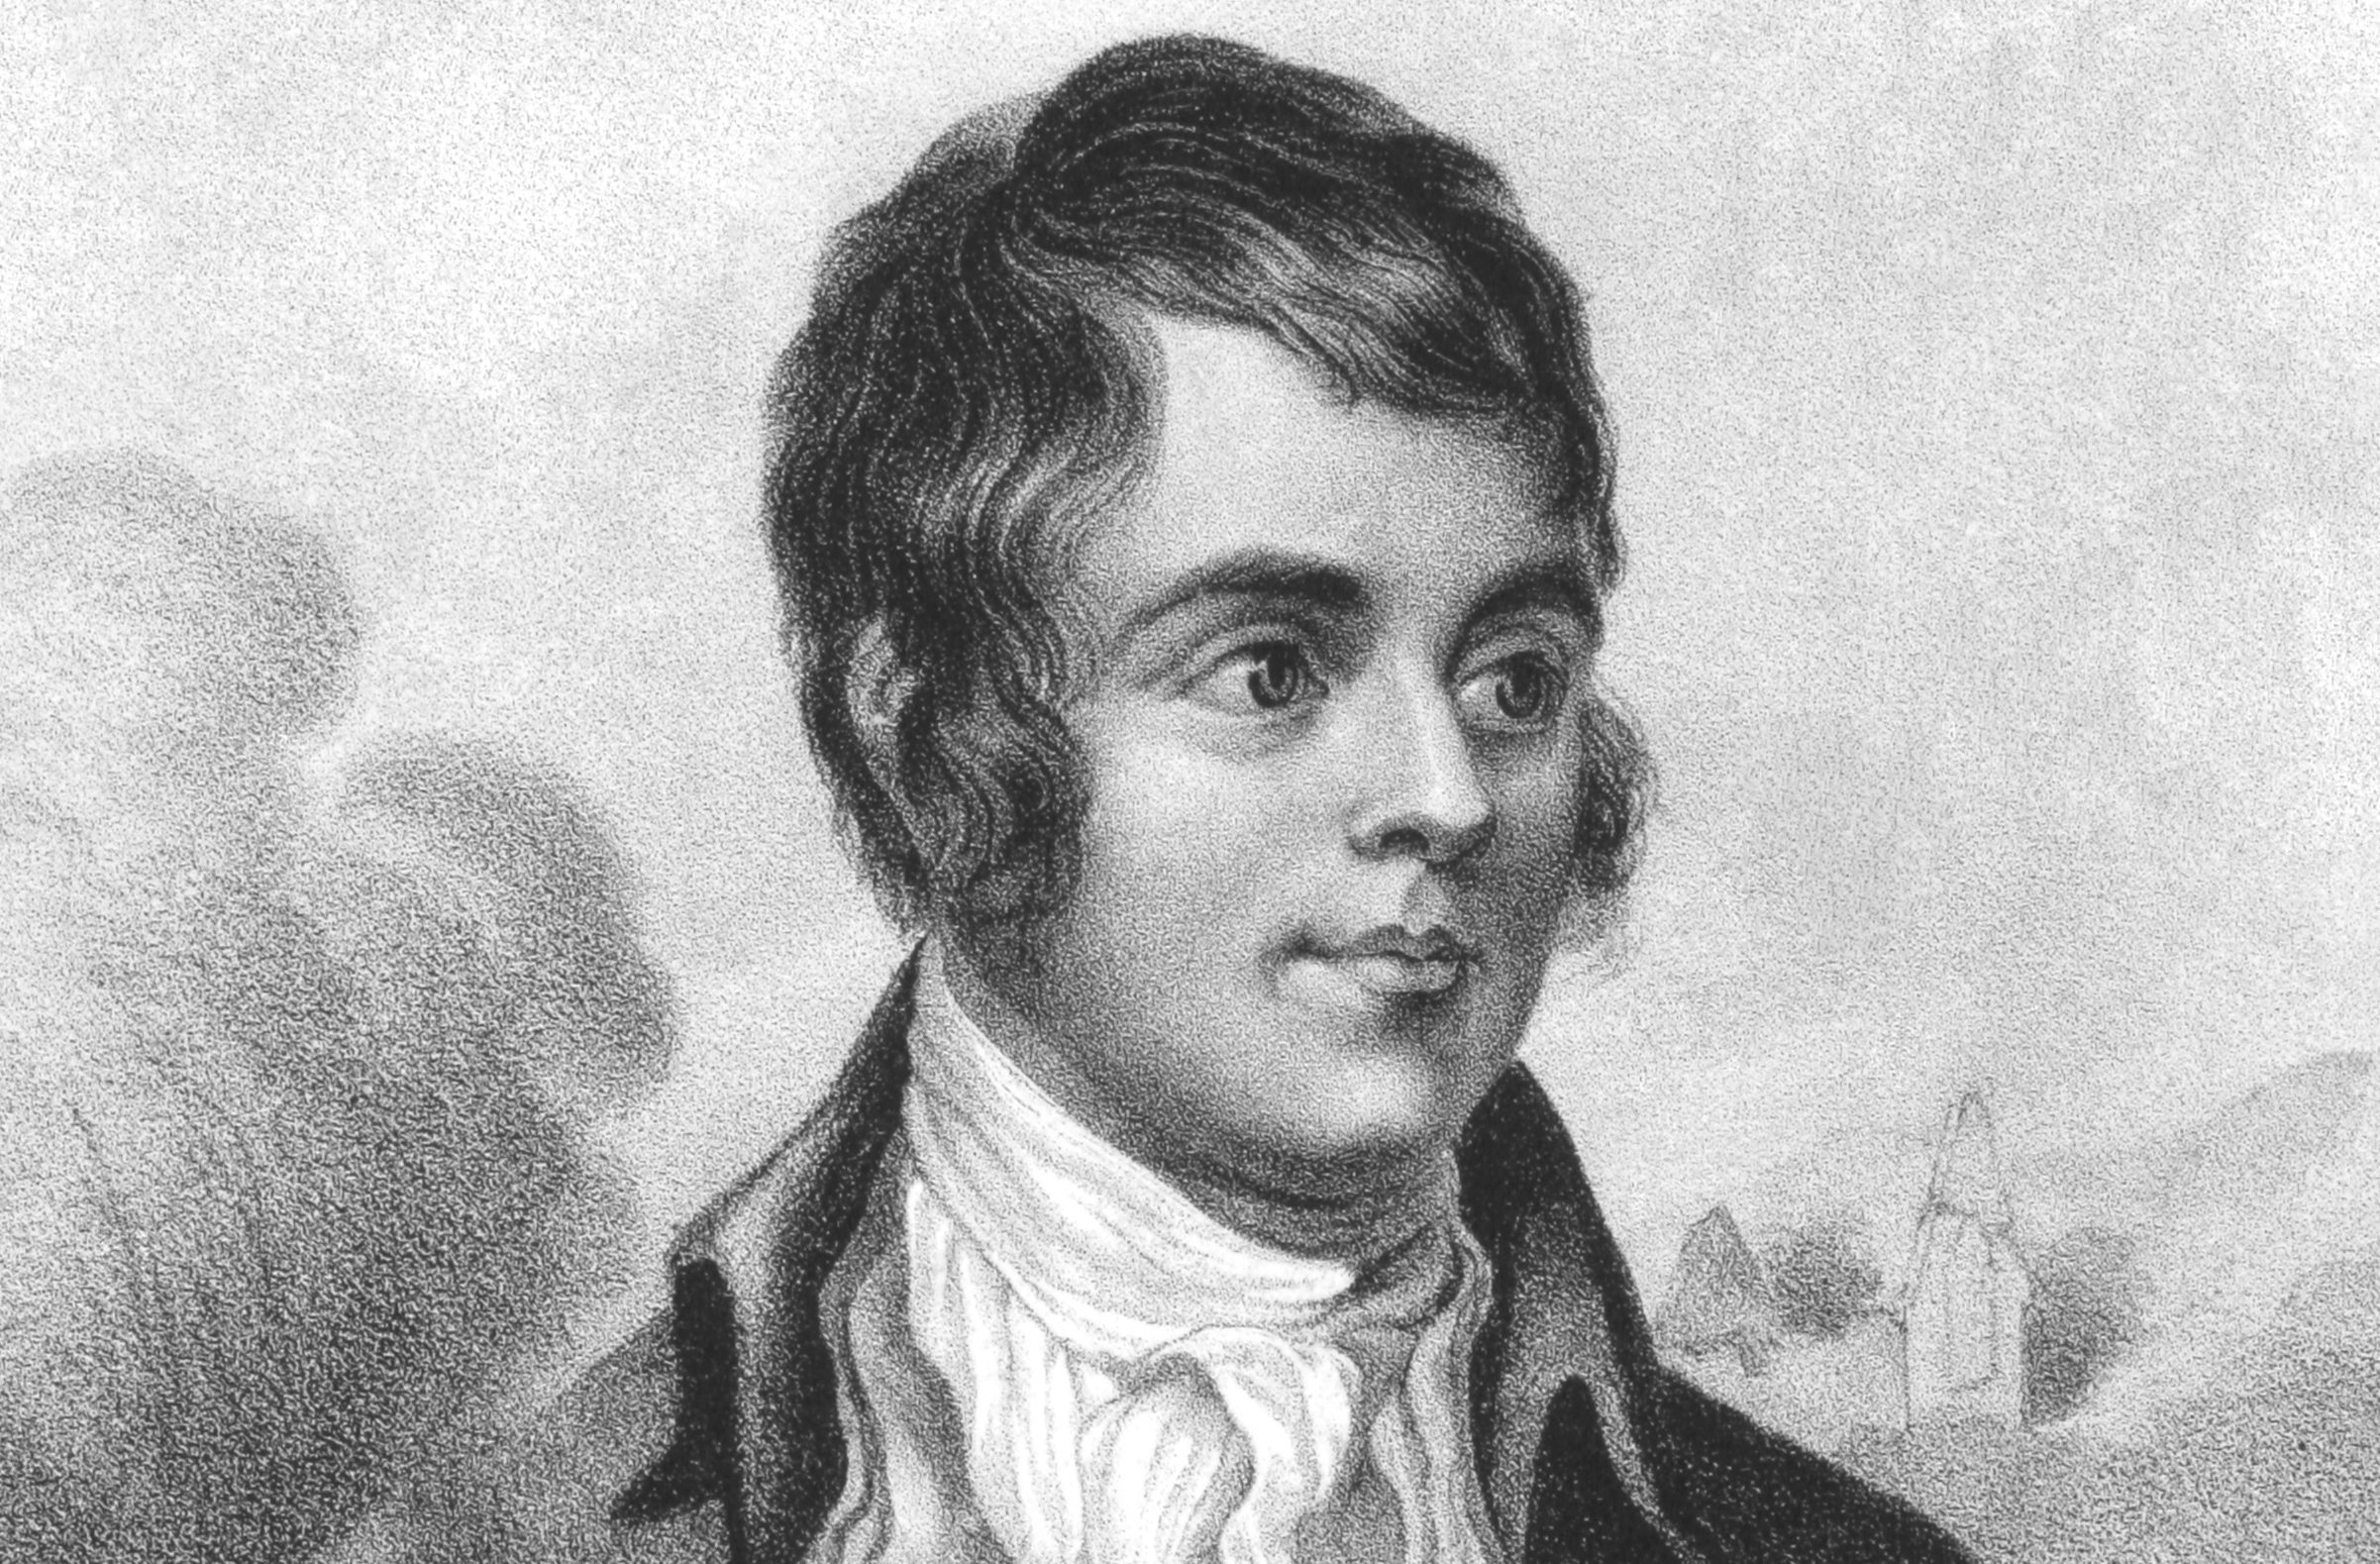 Robert Burns was born on 25 January 260 years ago. (iStock).